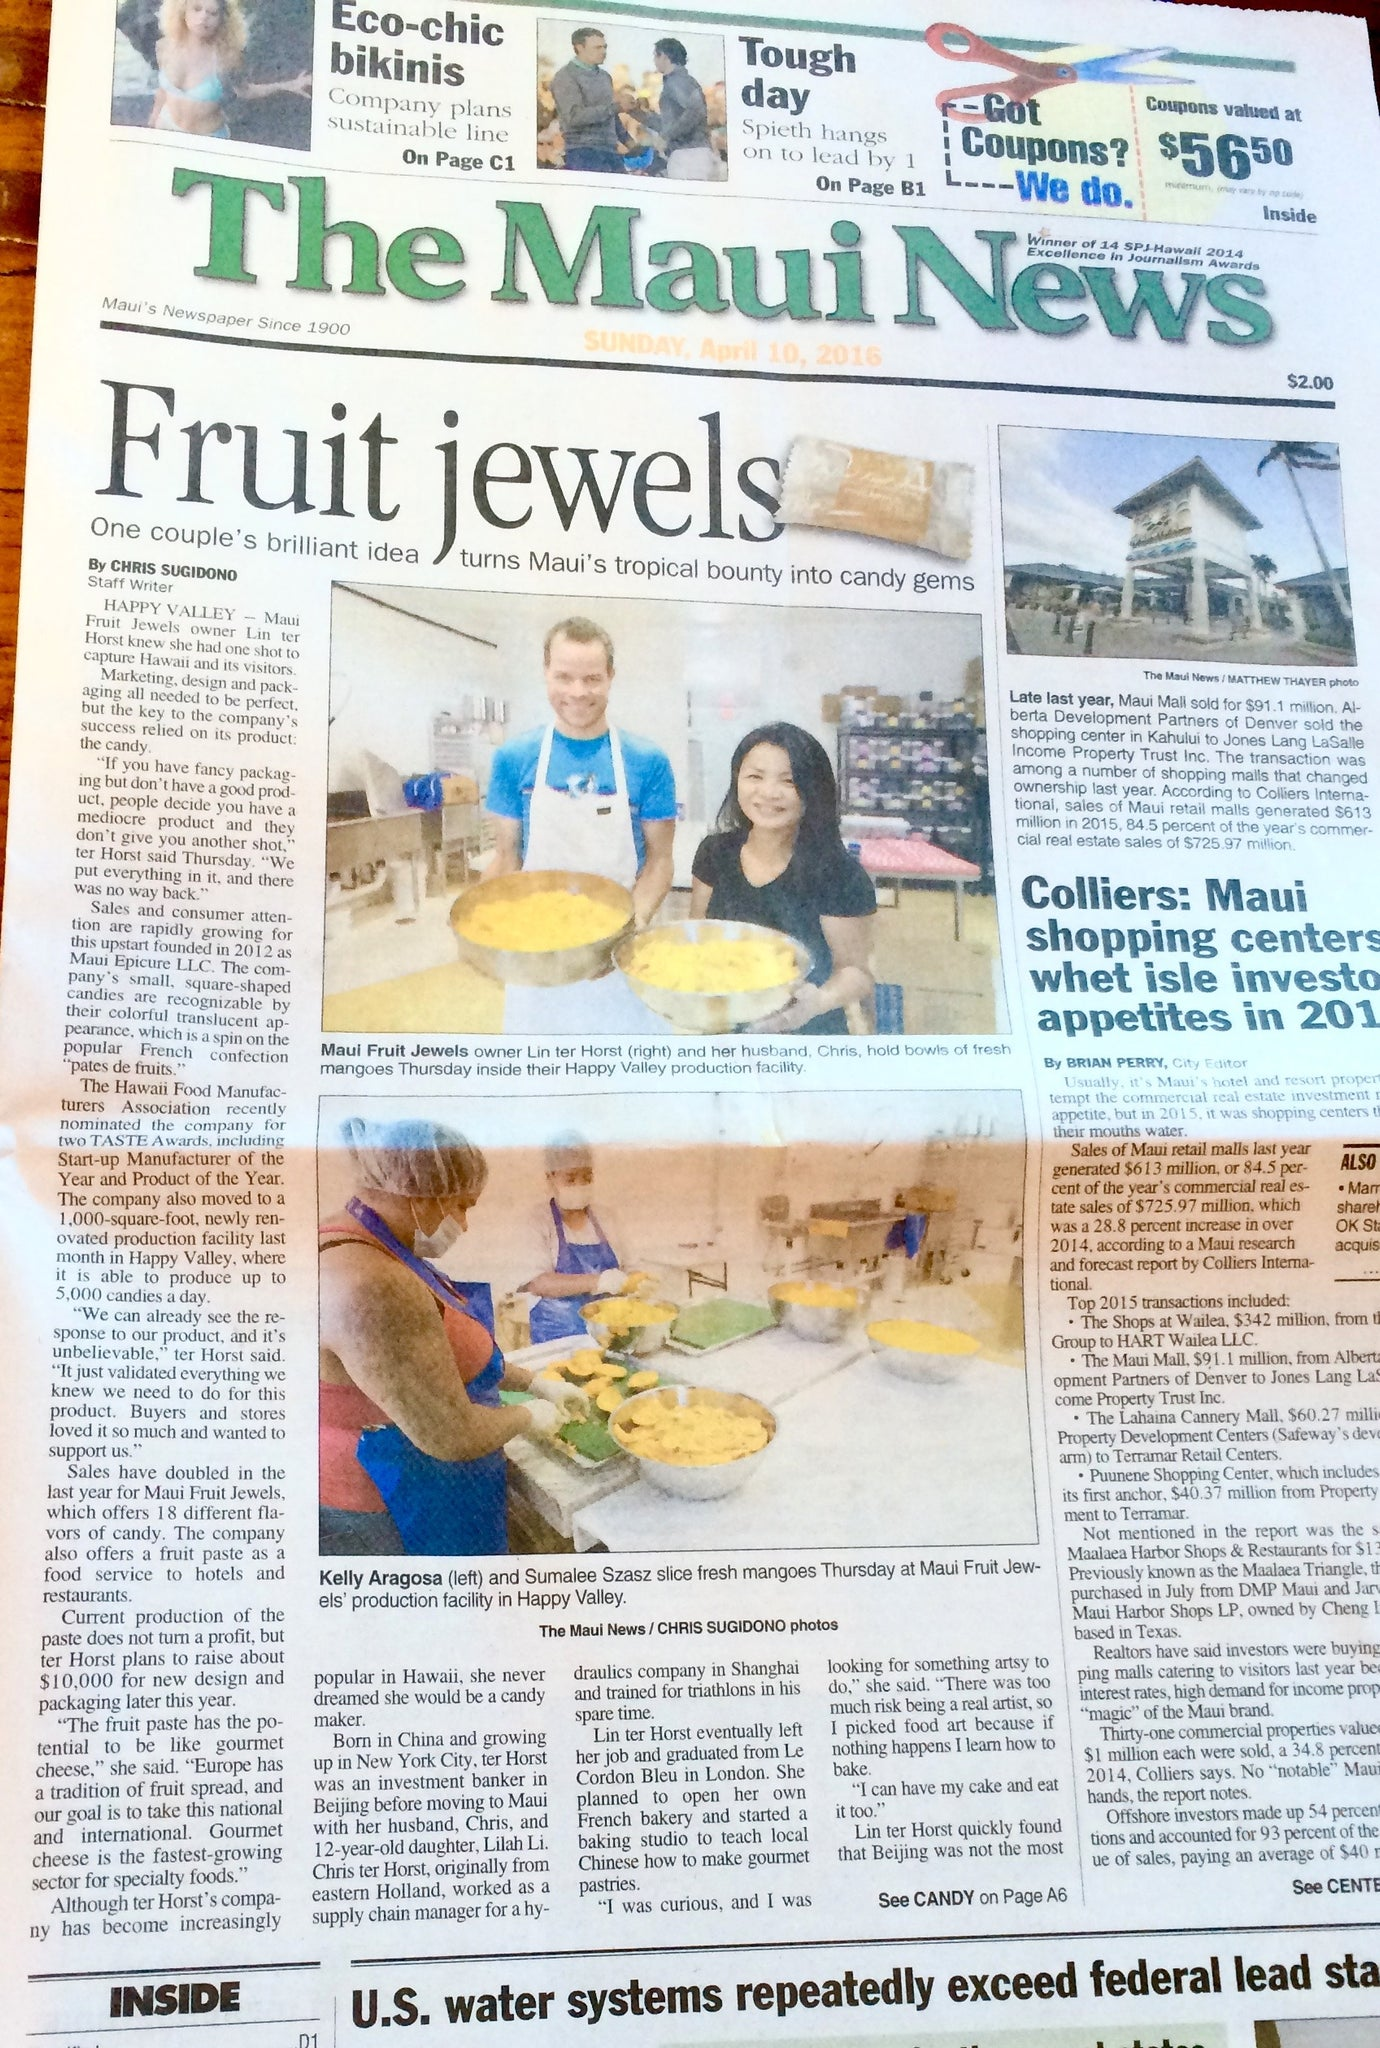 Maui Fruit Jewels in The Maui News April 10, 2016